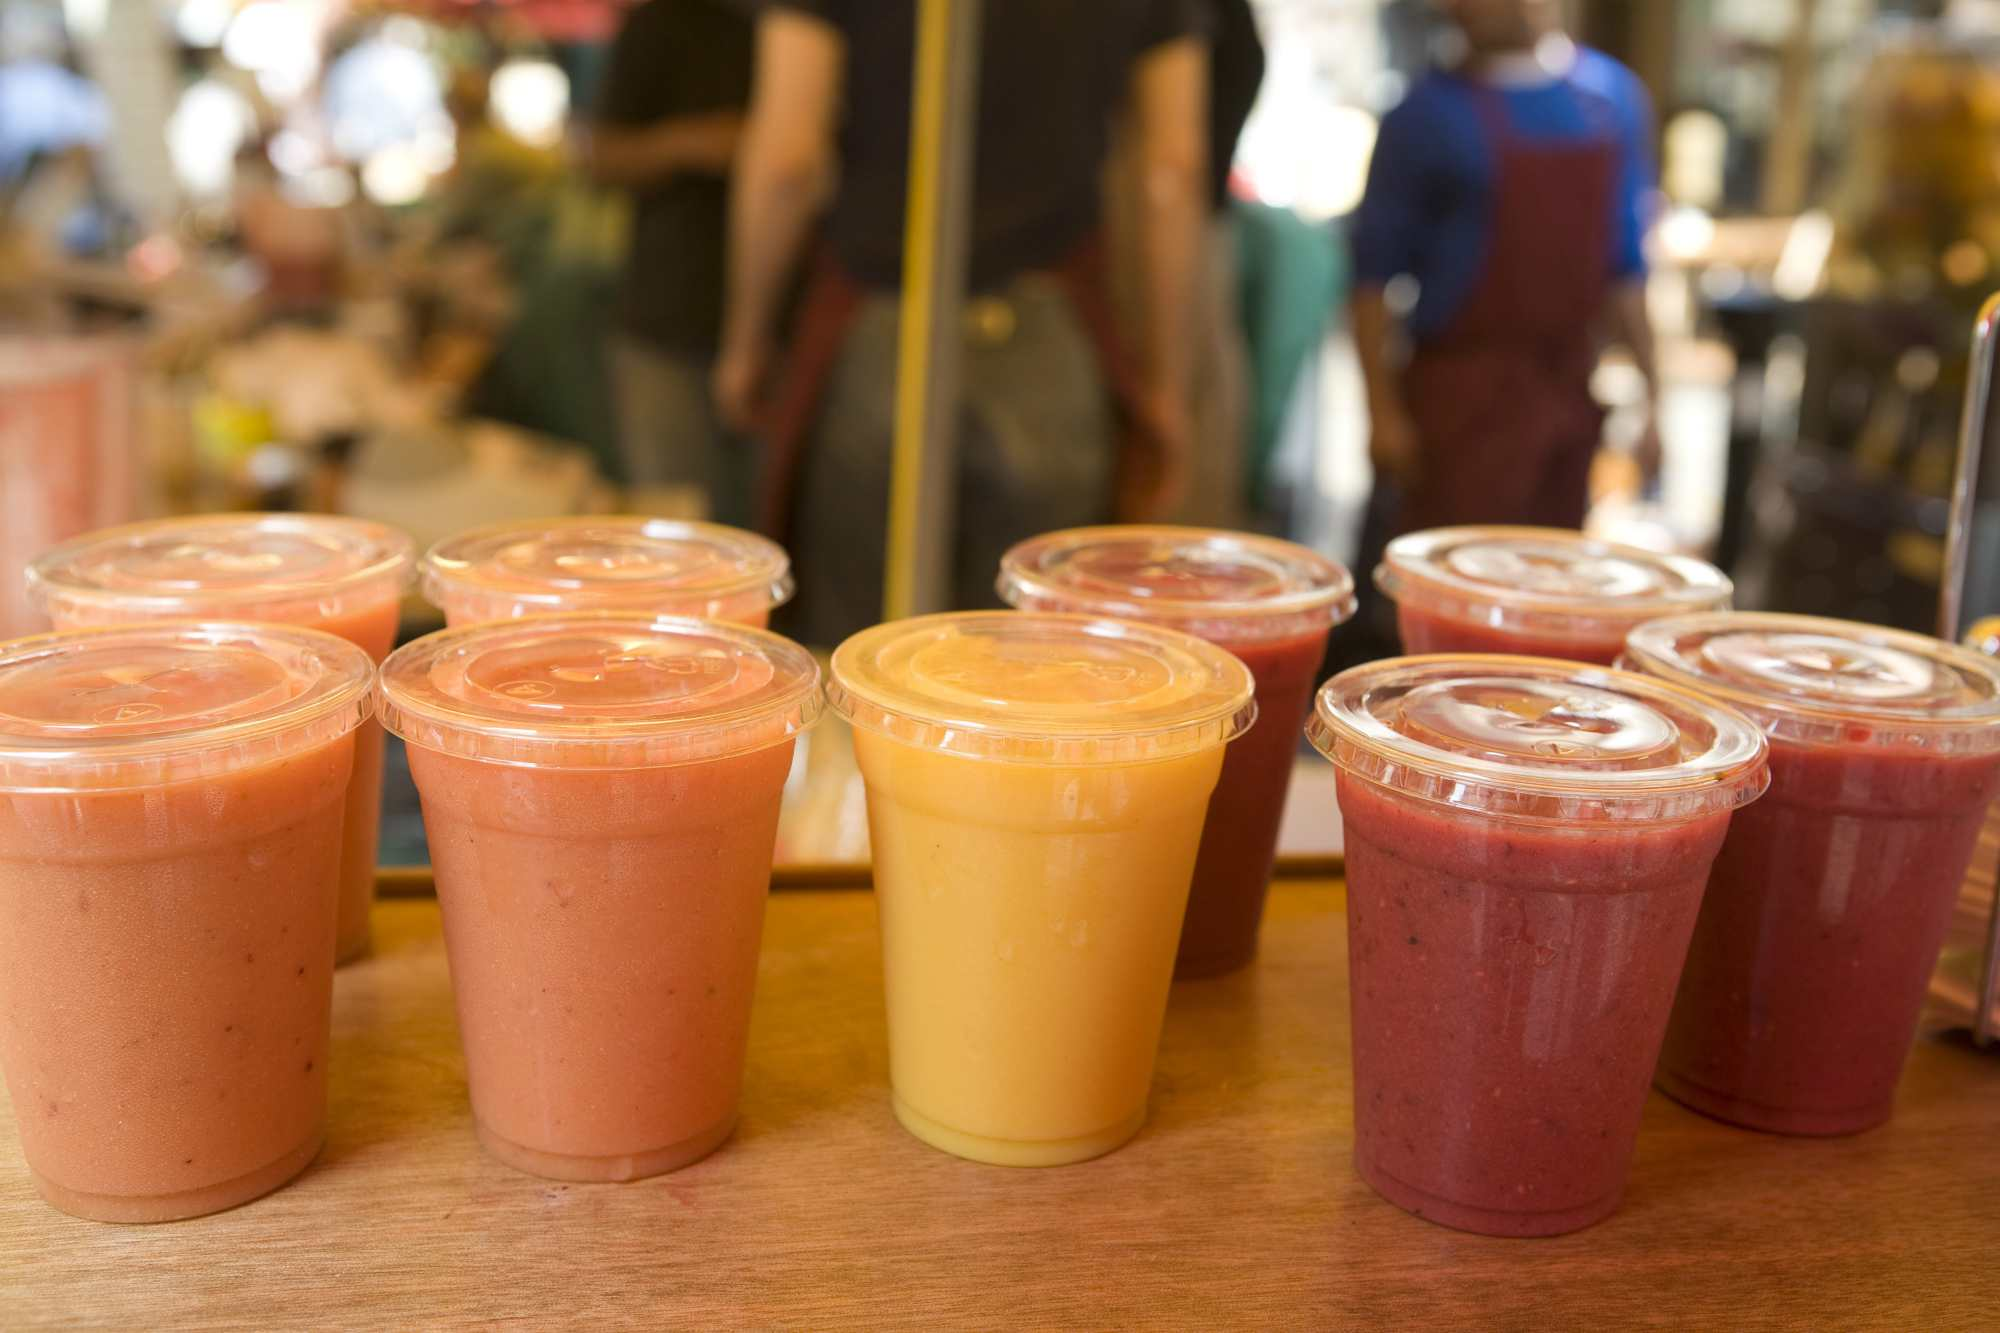 Several to go cups of smoothies